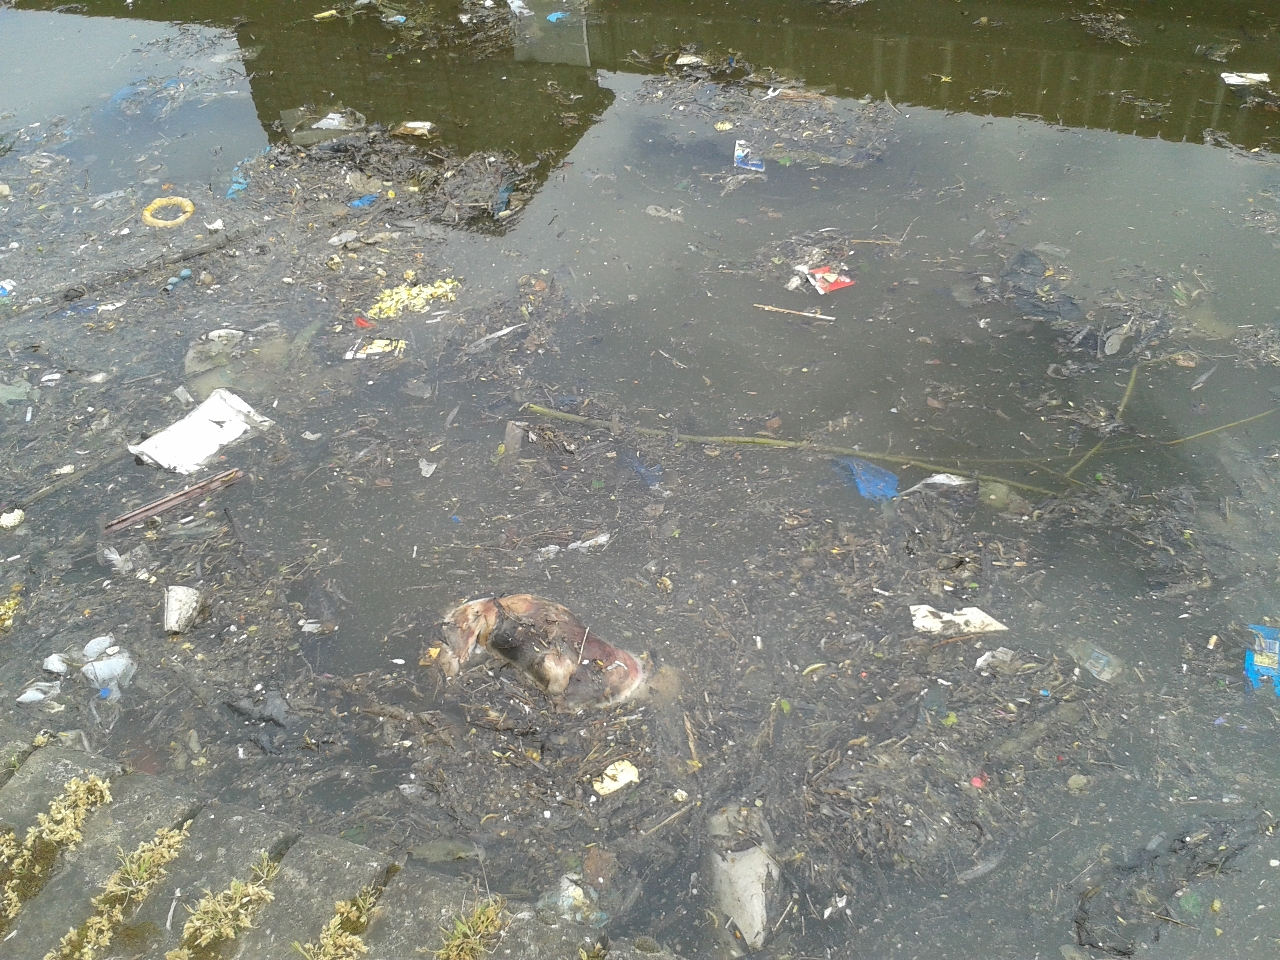 Ugly: rubbish clogging the canal, as witnessed by Gini Moore